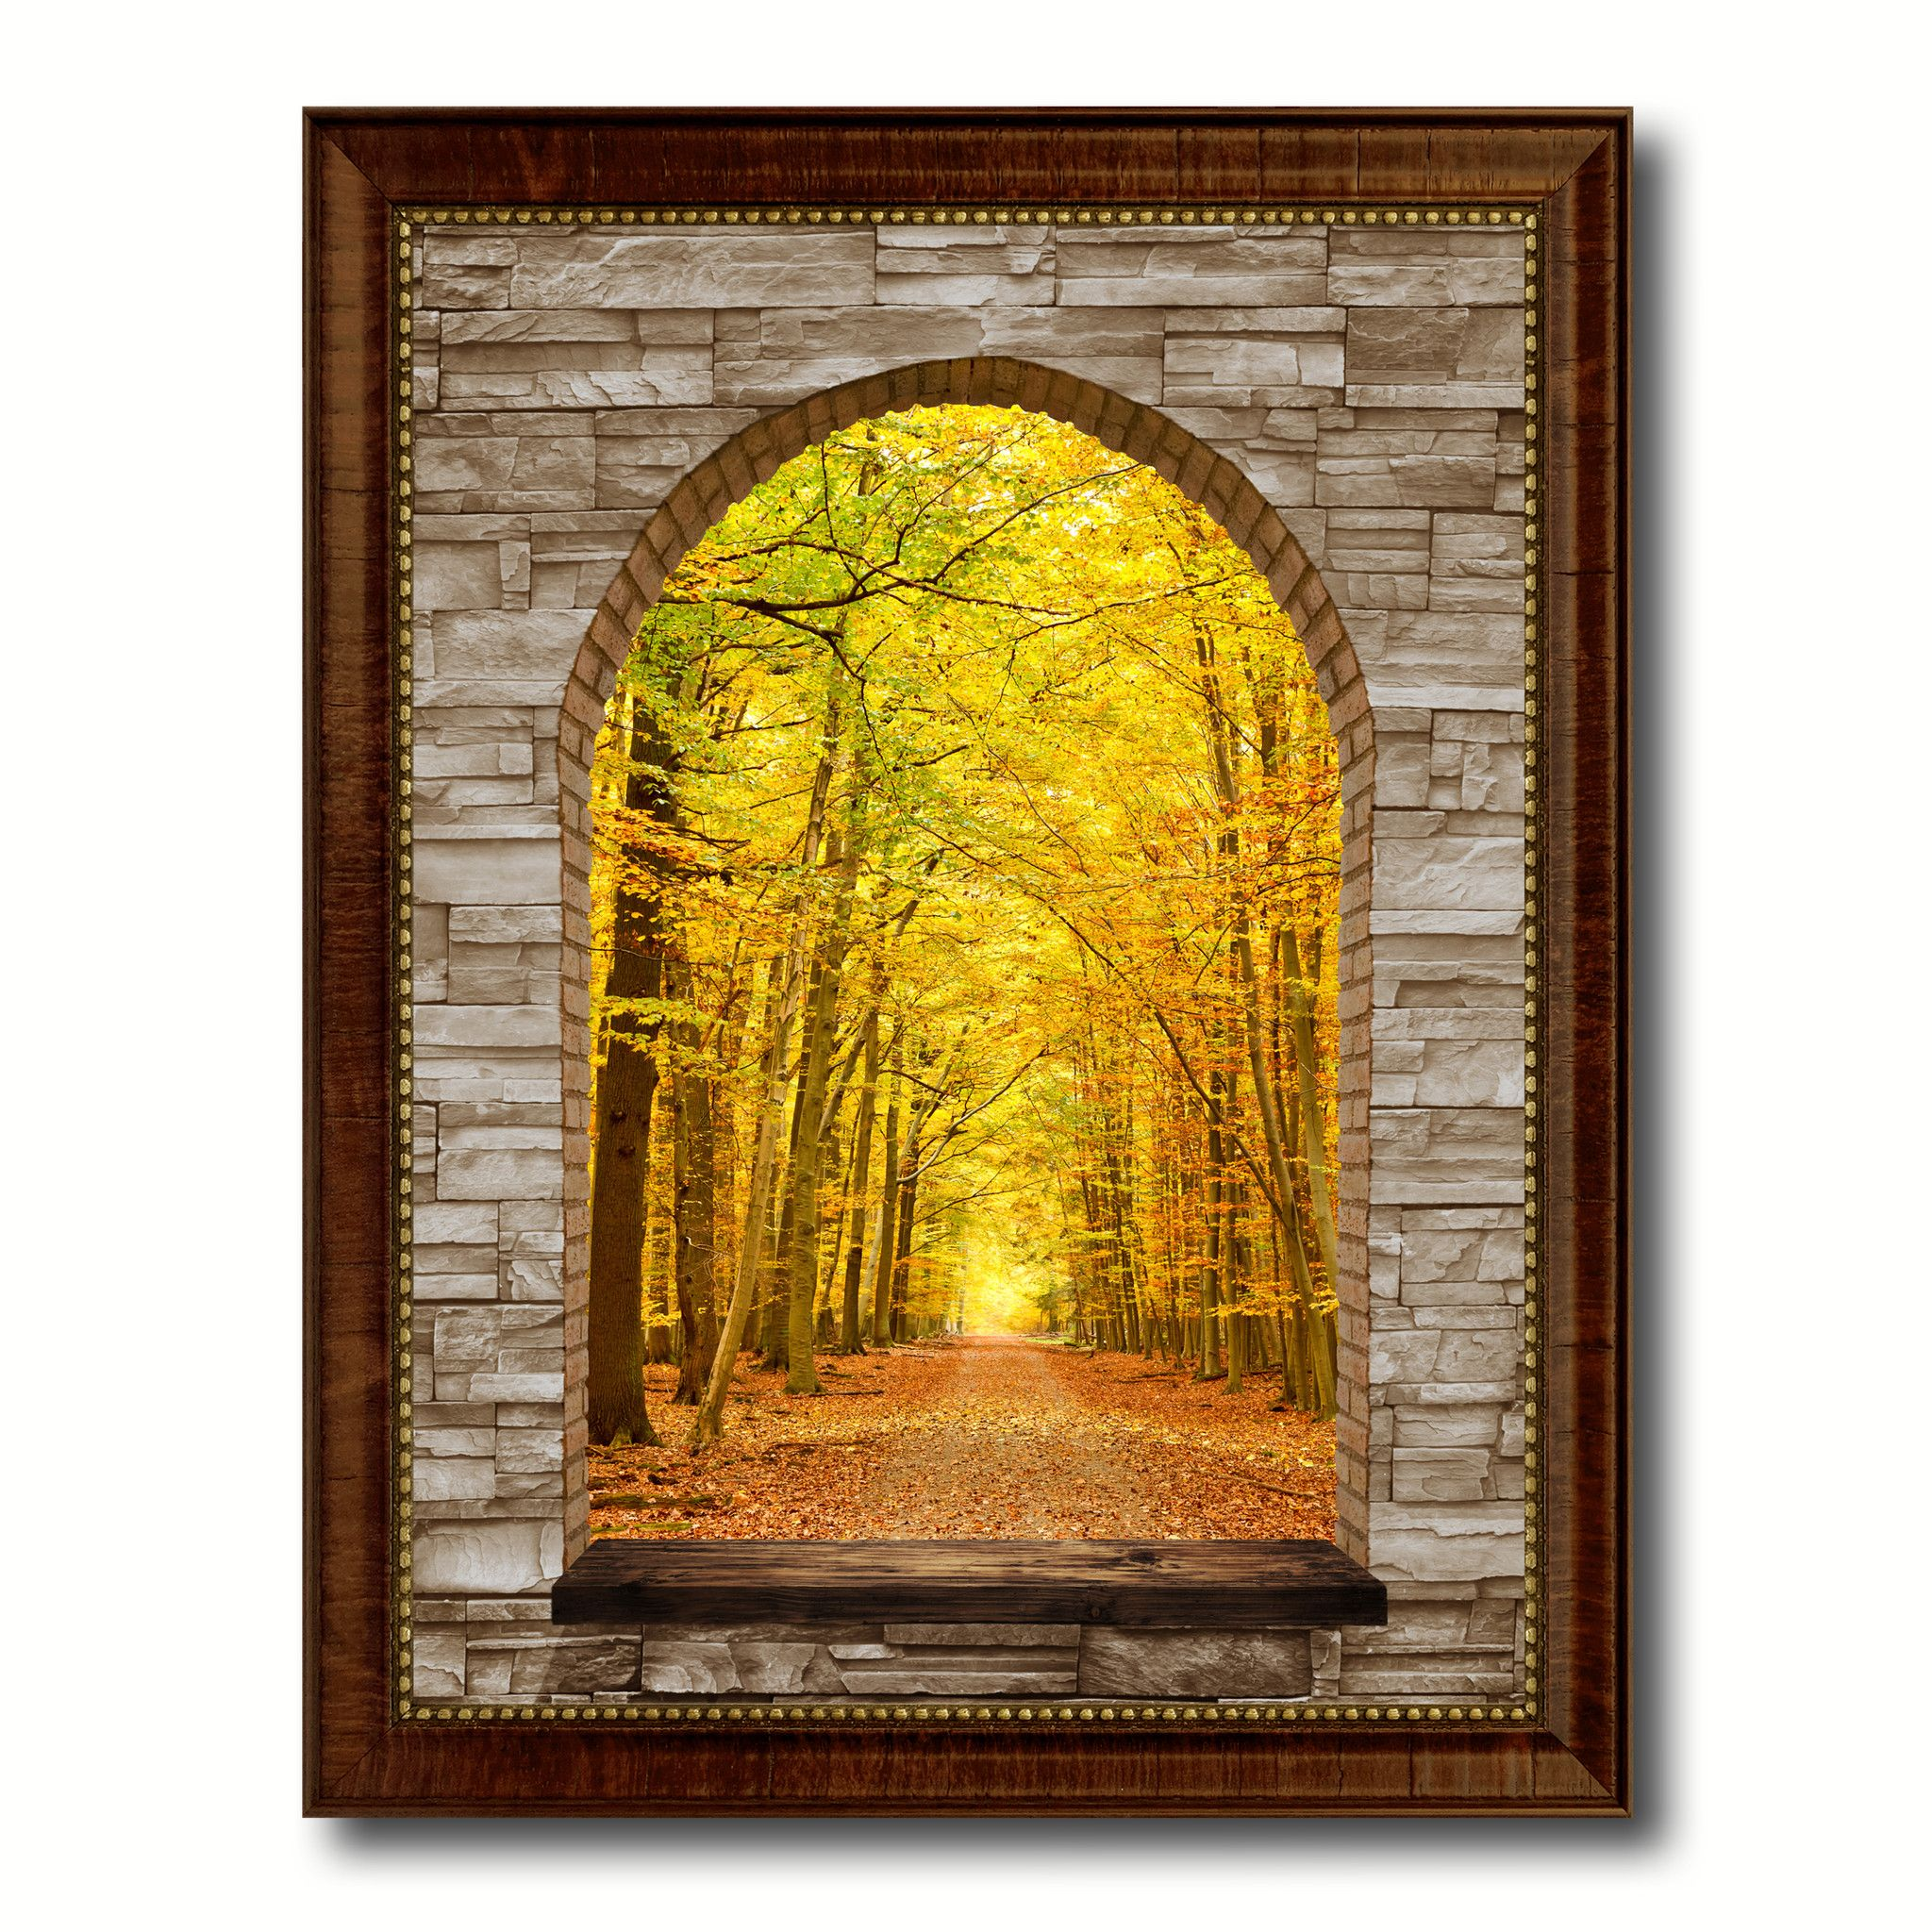 Pathway Autumn Park Picture 3D Arch Window Canvas Print Home Décor ...